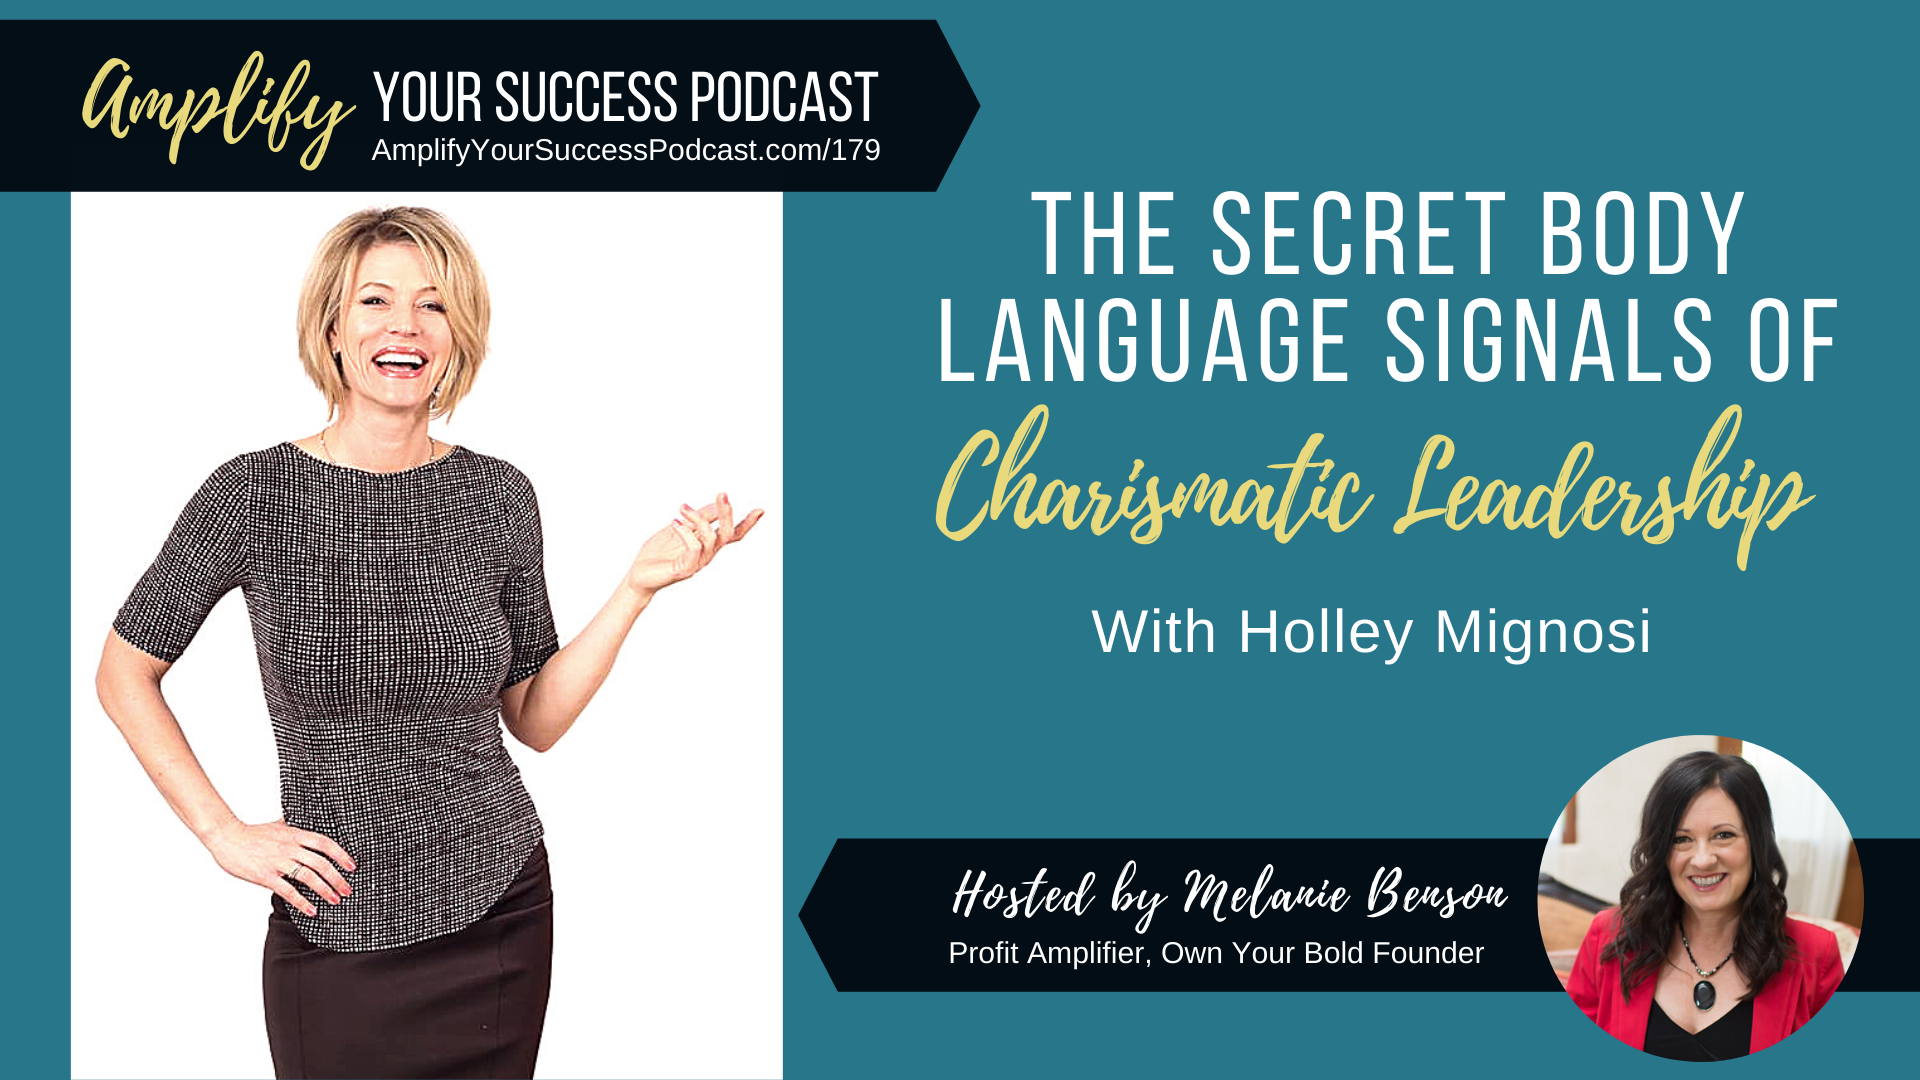 The Secret Body Language Signals of Charismatic Leadership with Holley Mignosi on Amplify Your Success Podcast Episode 179 with Melanie Benson